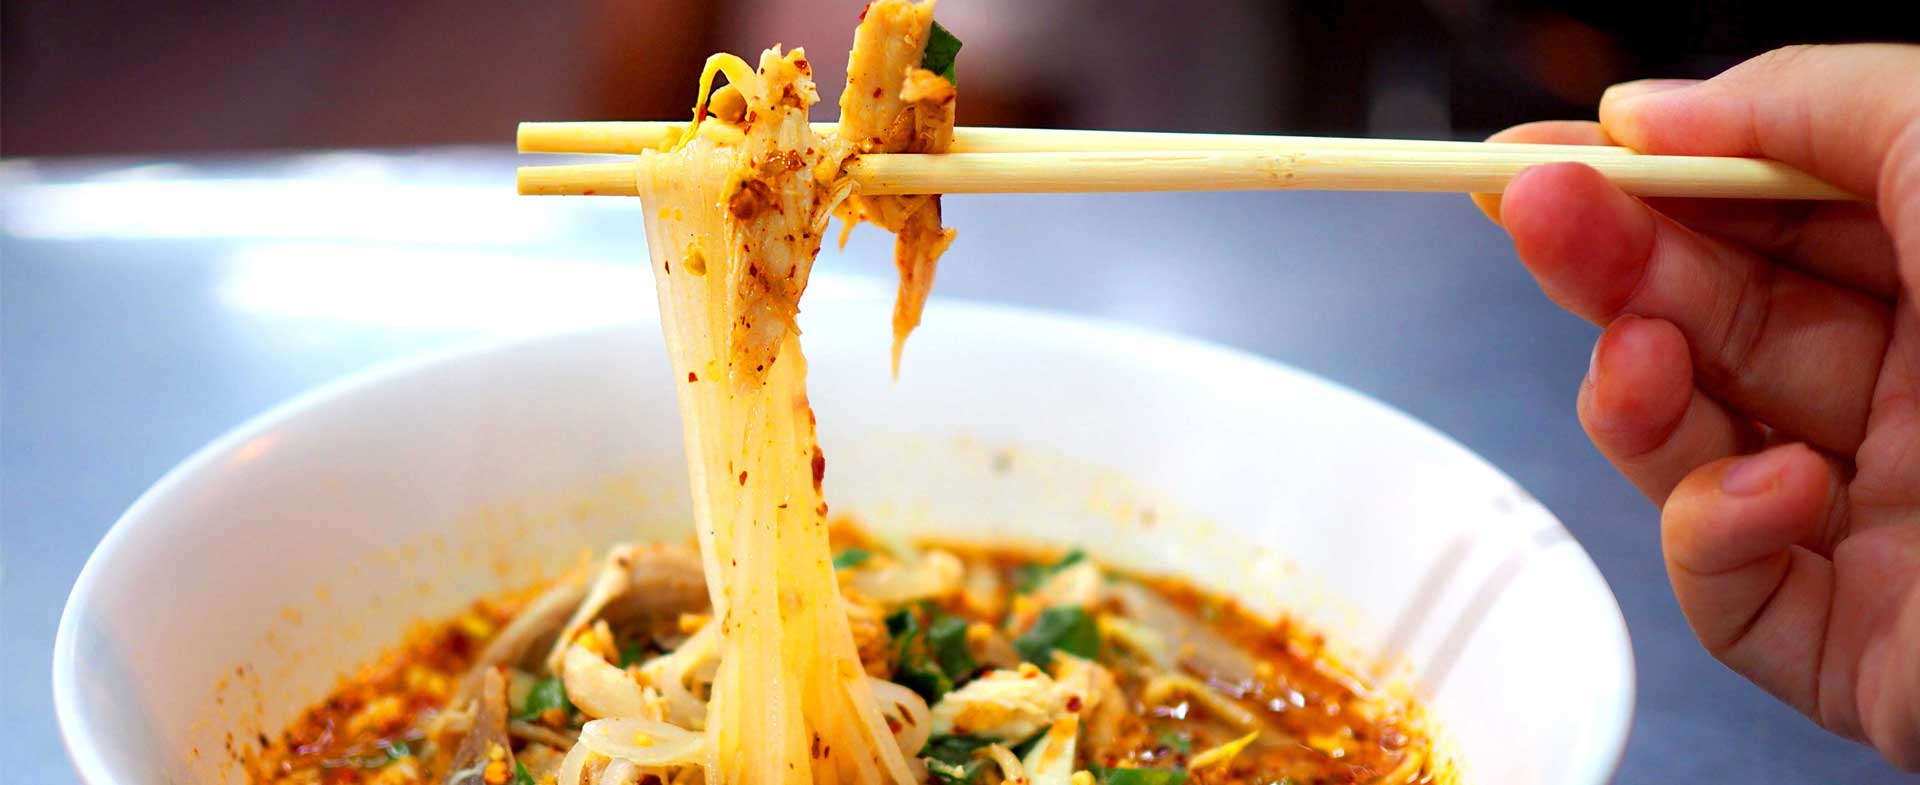 spicy foods noodle bowl